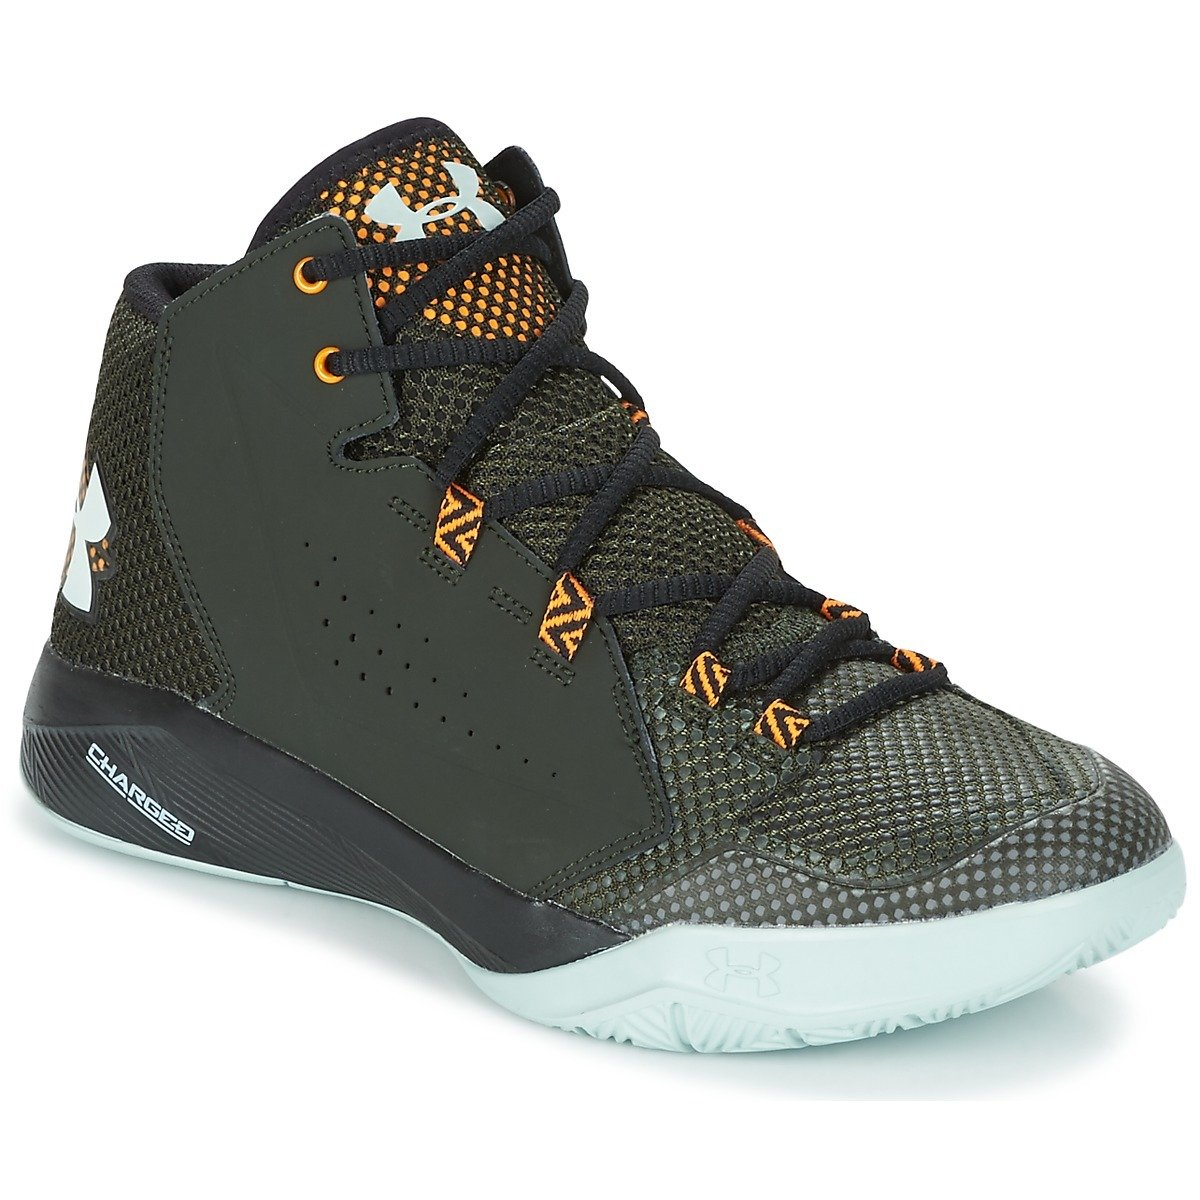 fbb613f3a2c Under Armour Torch Fade Basketball shoes - 1274423-357